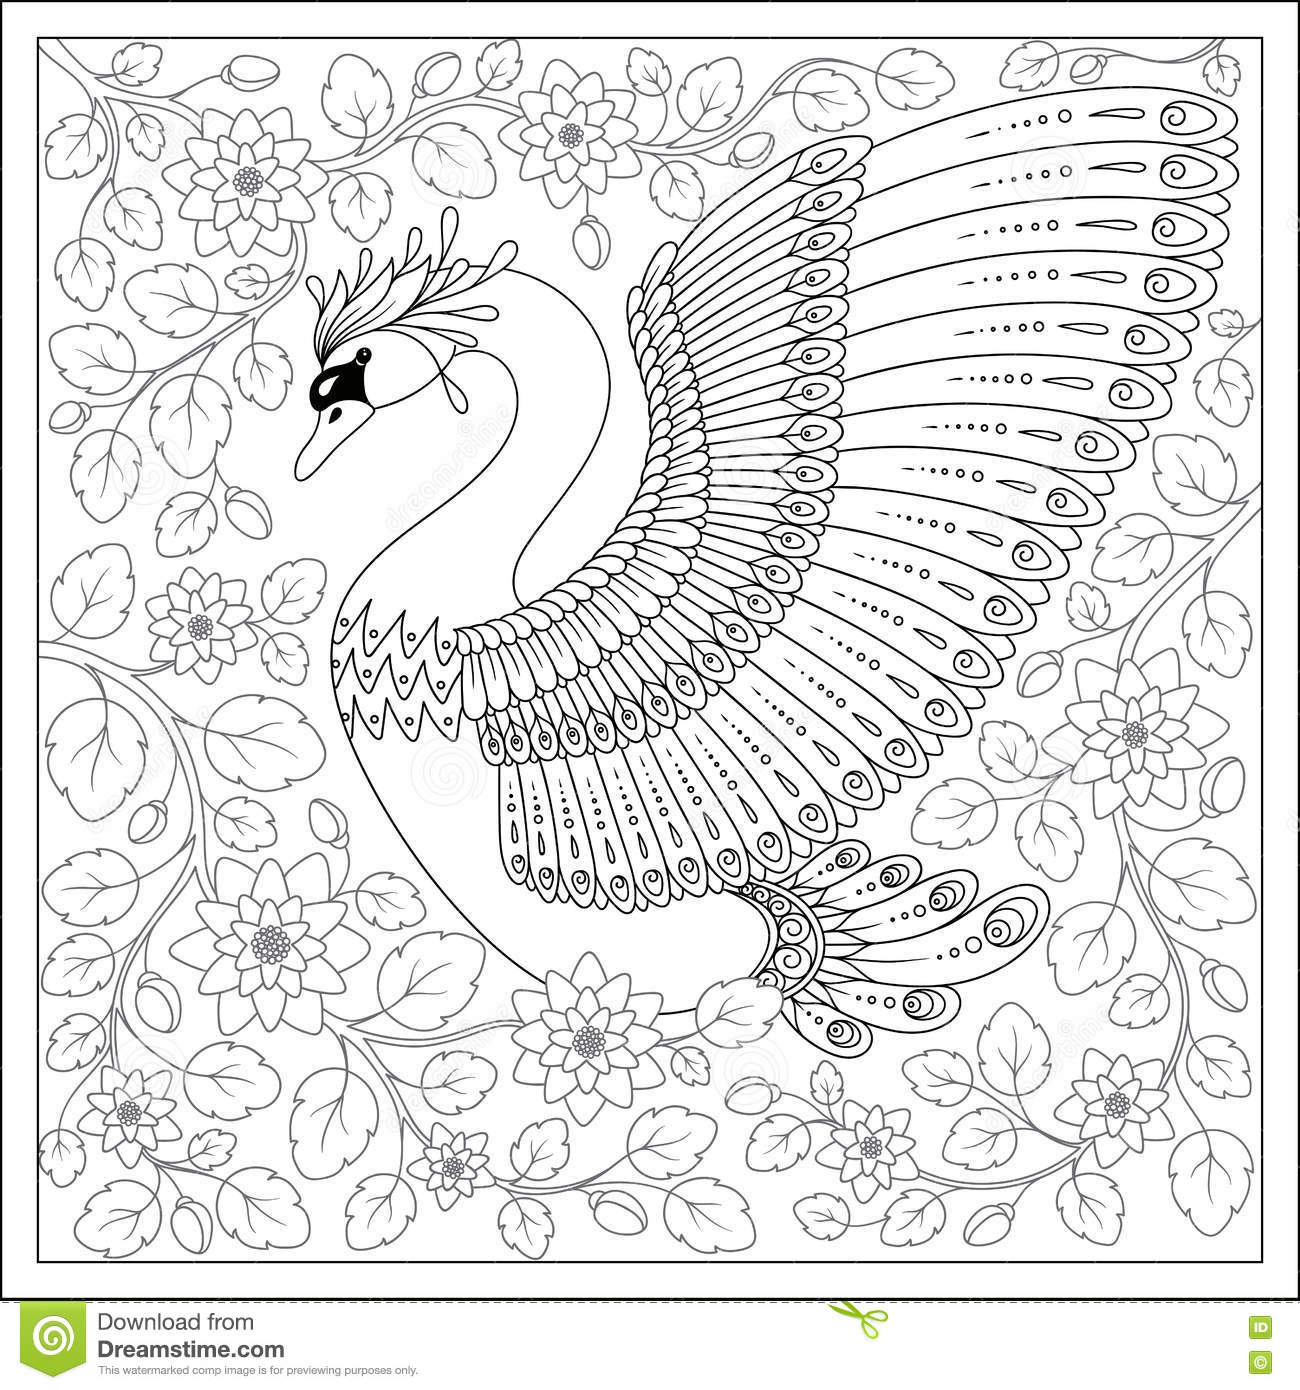 Drawing Zentangle Swan For Coloring Page Shirt Design